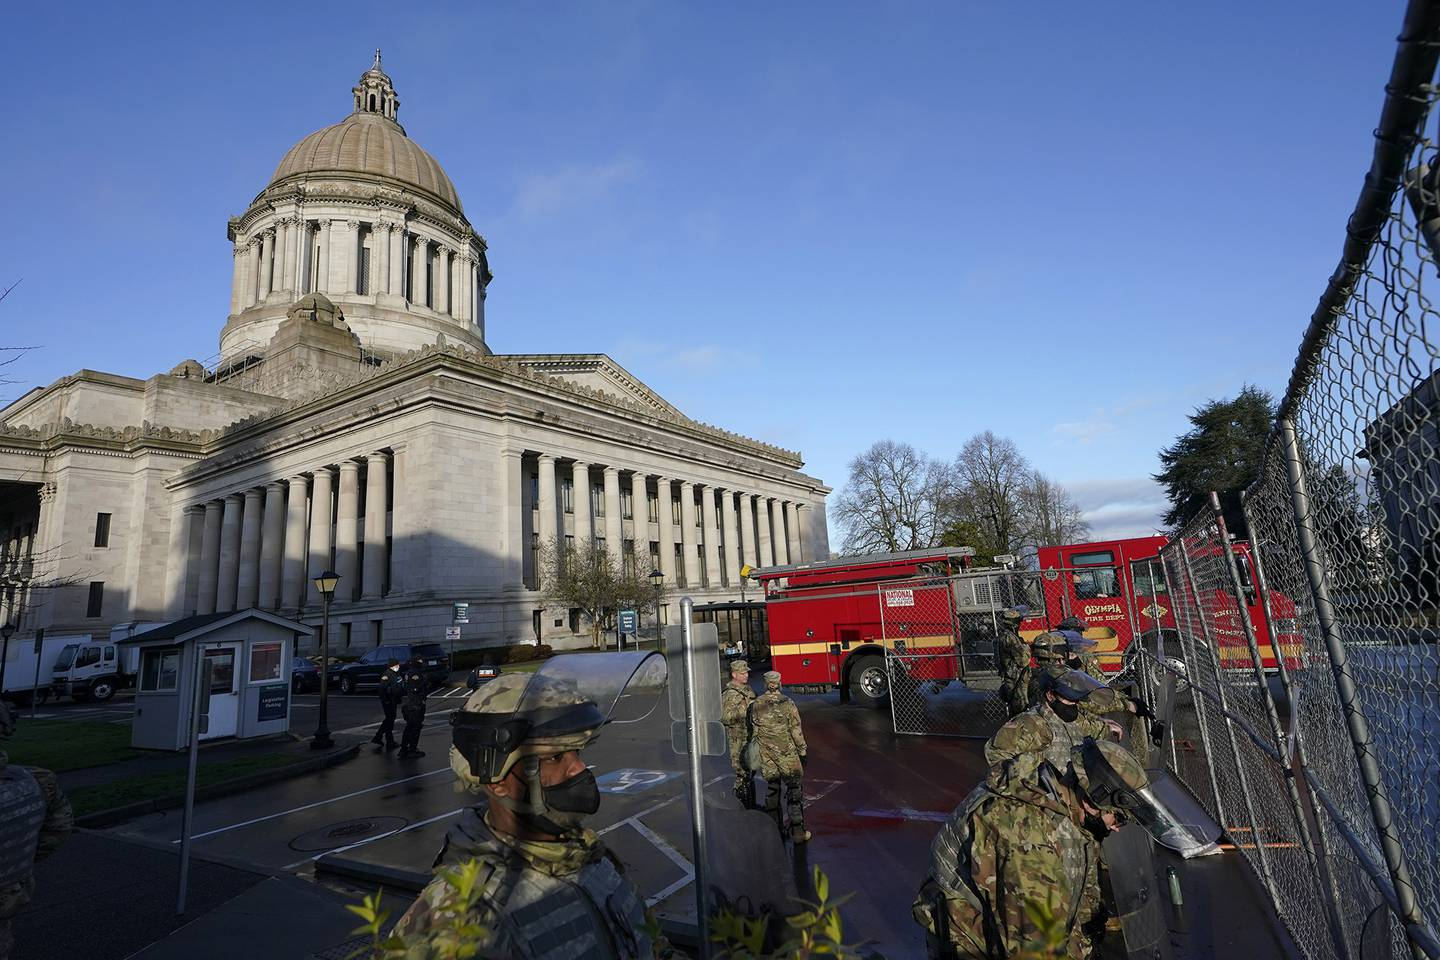 Members of the Washington National Guard stand along a perimeter fence as an Olympia Fire Dept. truck passes by, Sunday, Jan. 10, 2021, at the Capitol in Olympia, Wash.